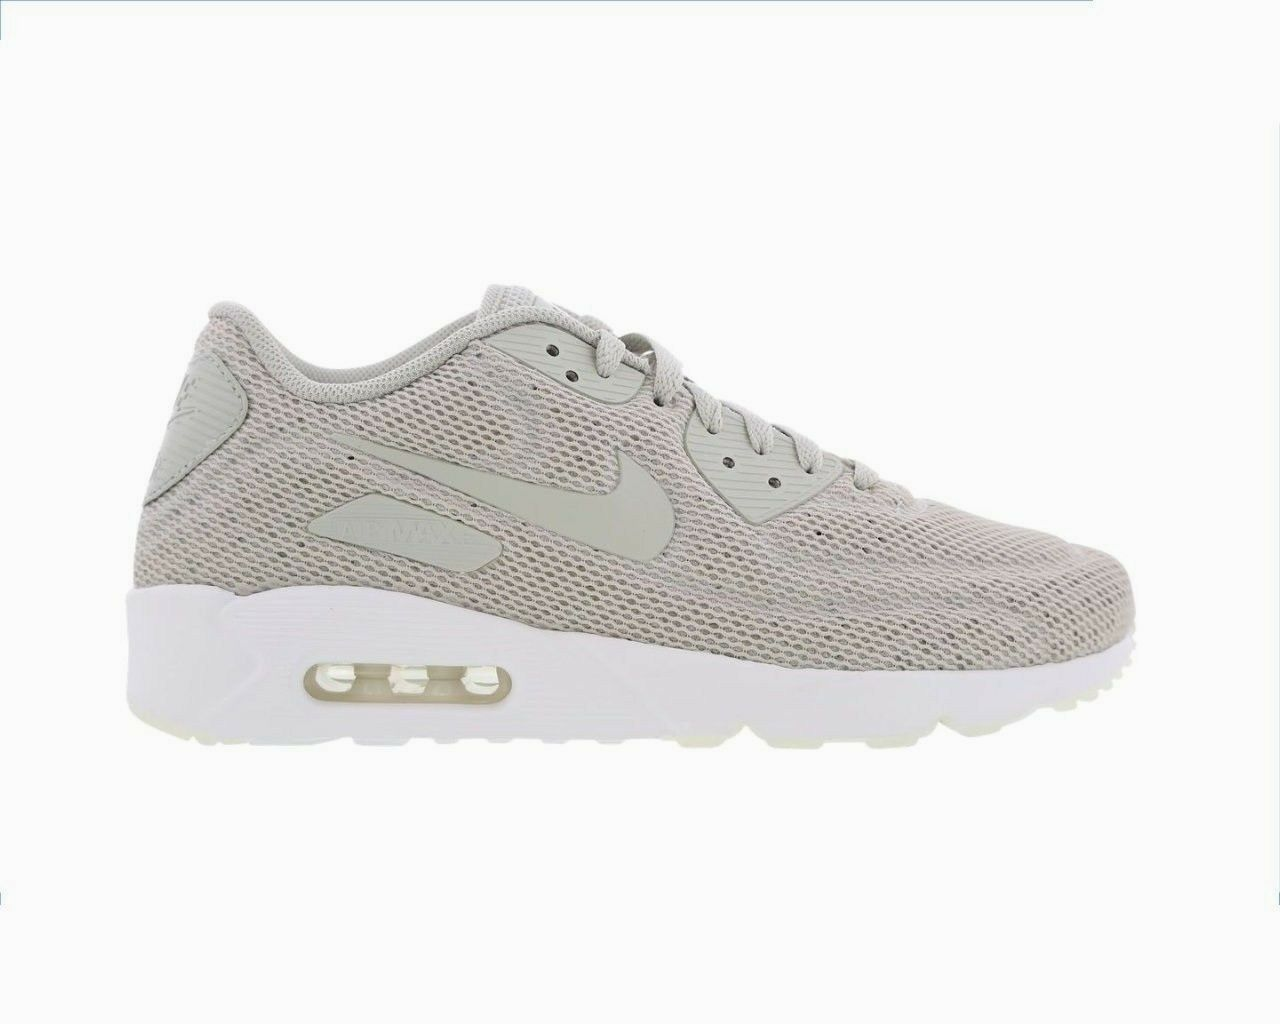 Original Hommes Nike Air Max Trainers 90 Ultra 2.0 Breathe Trainers Max Pale Gris 898010002 085446